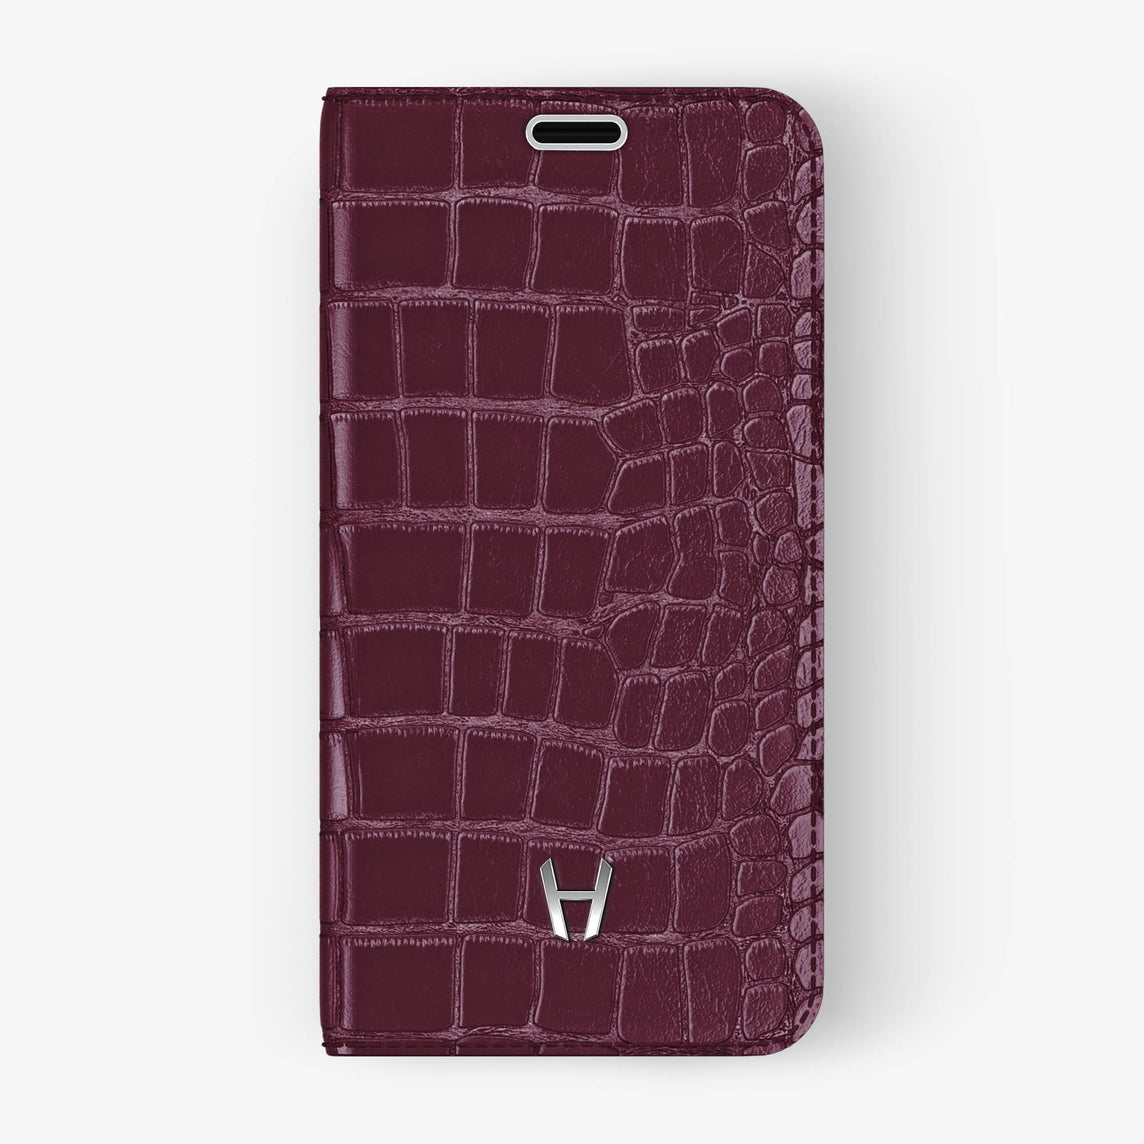 Burgundy Alligator iPhone Folio Case for iPhone XS Max finishing stainless steel - Hadoro Luxury Cases